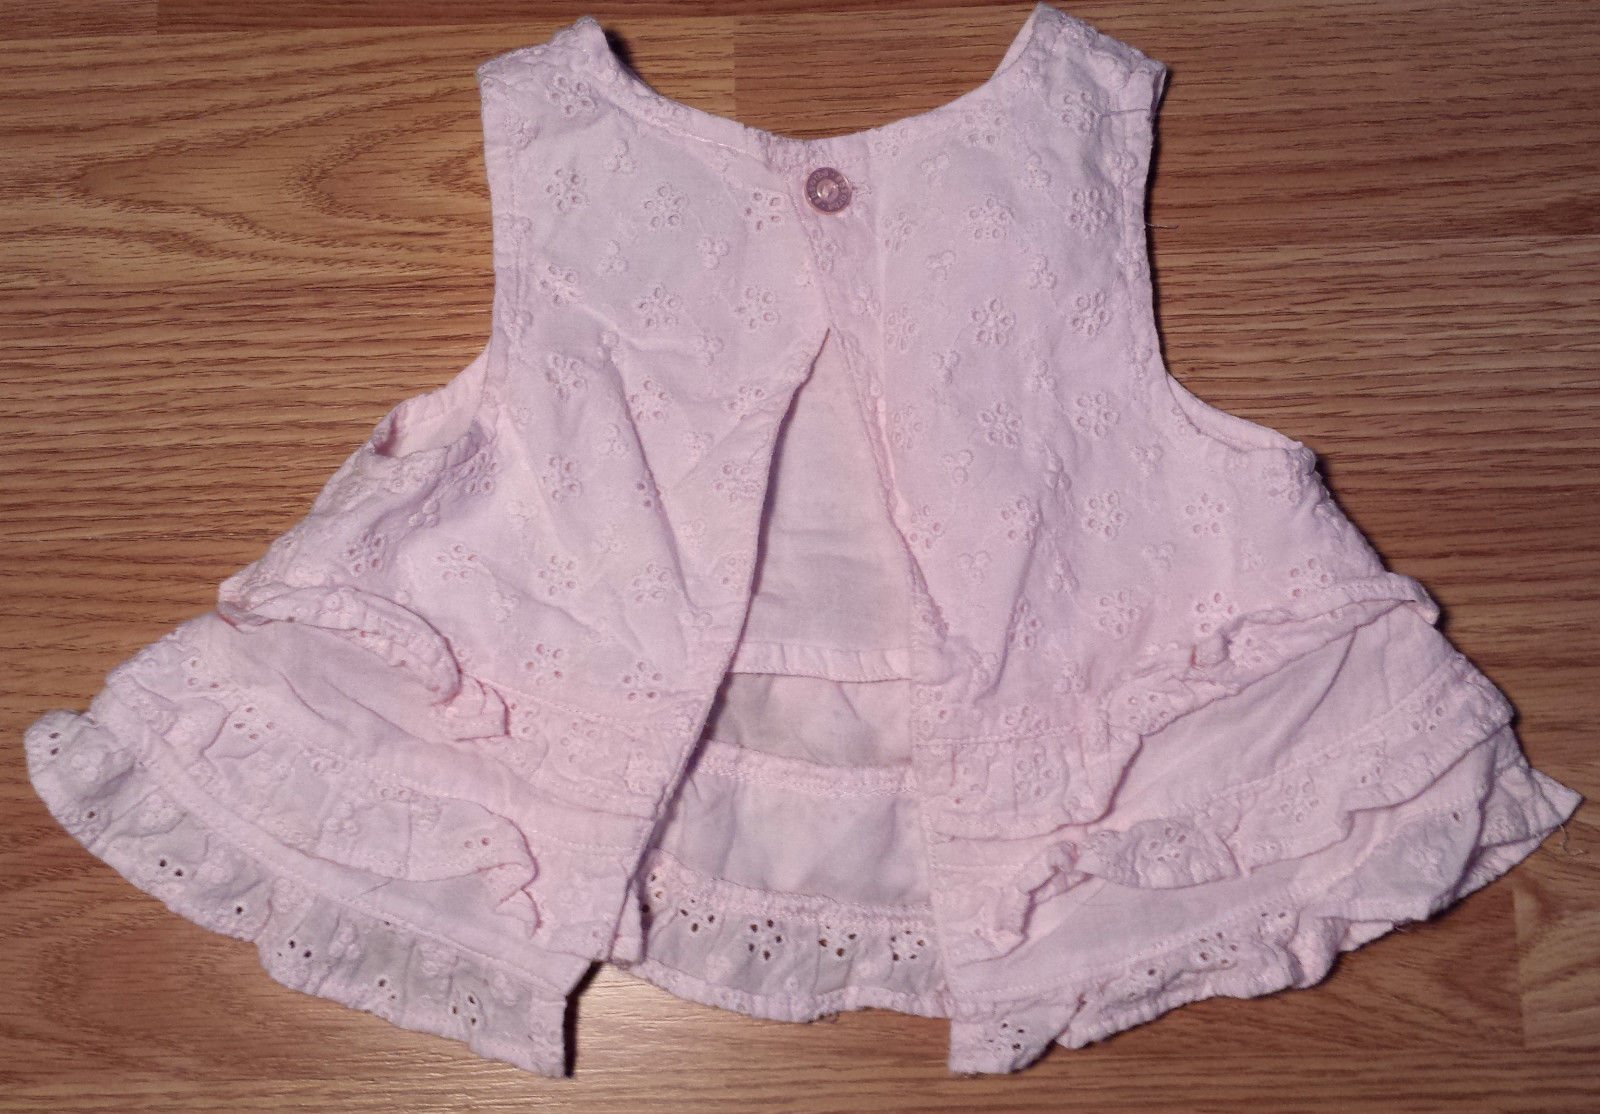 Girl's Size 6 M 3-6 Months 2 Pc Absorba Pink Eyelet Ruffled Flay Away Dress & DC